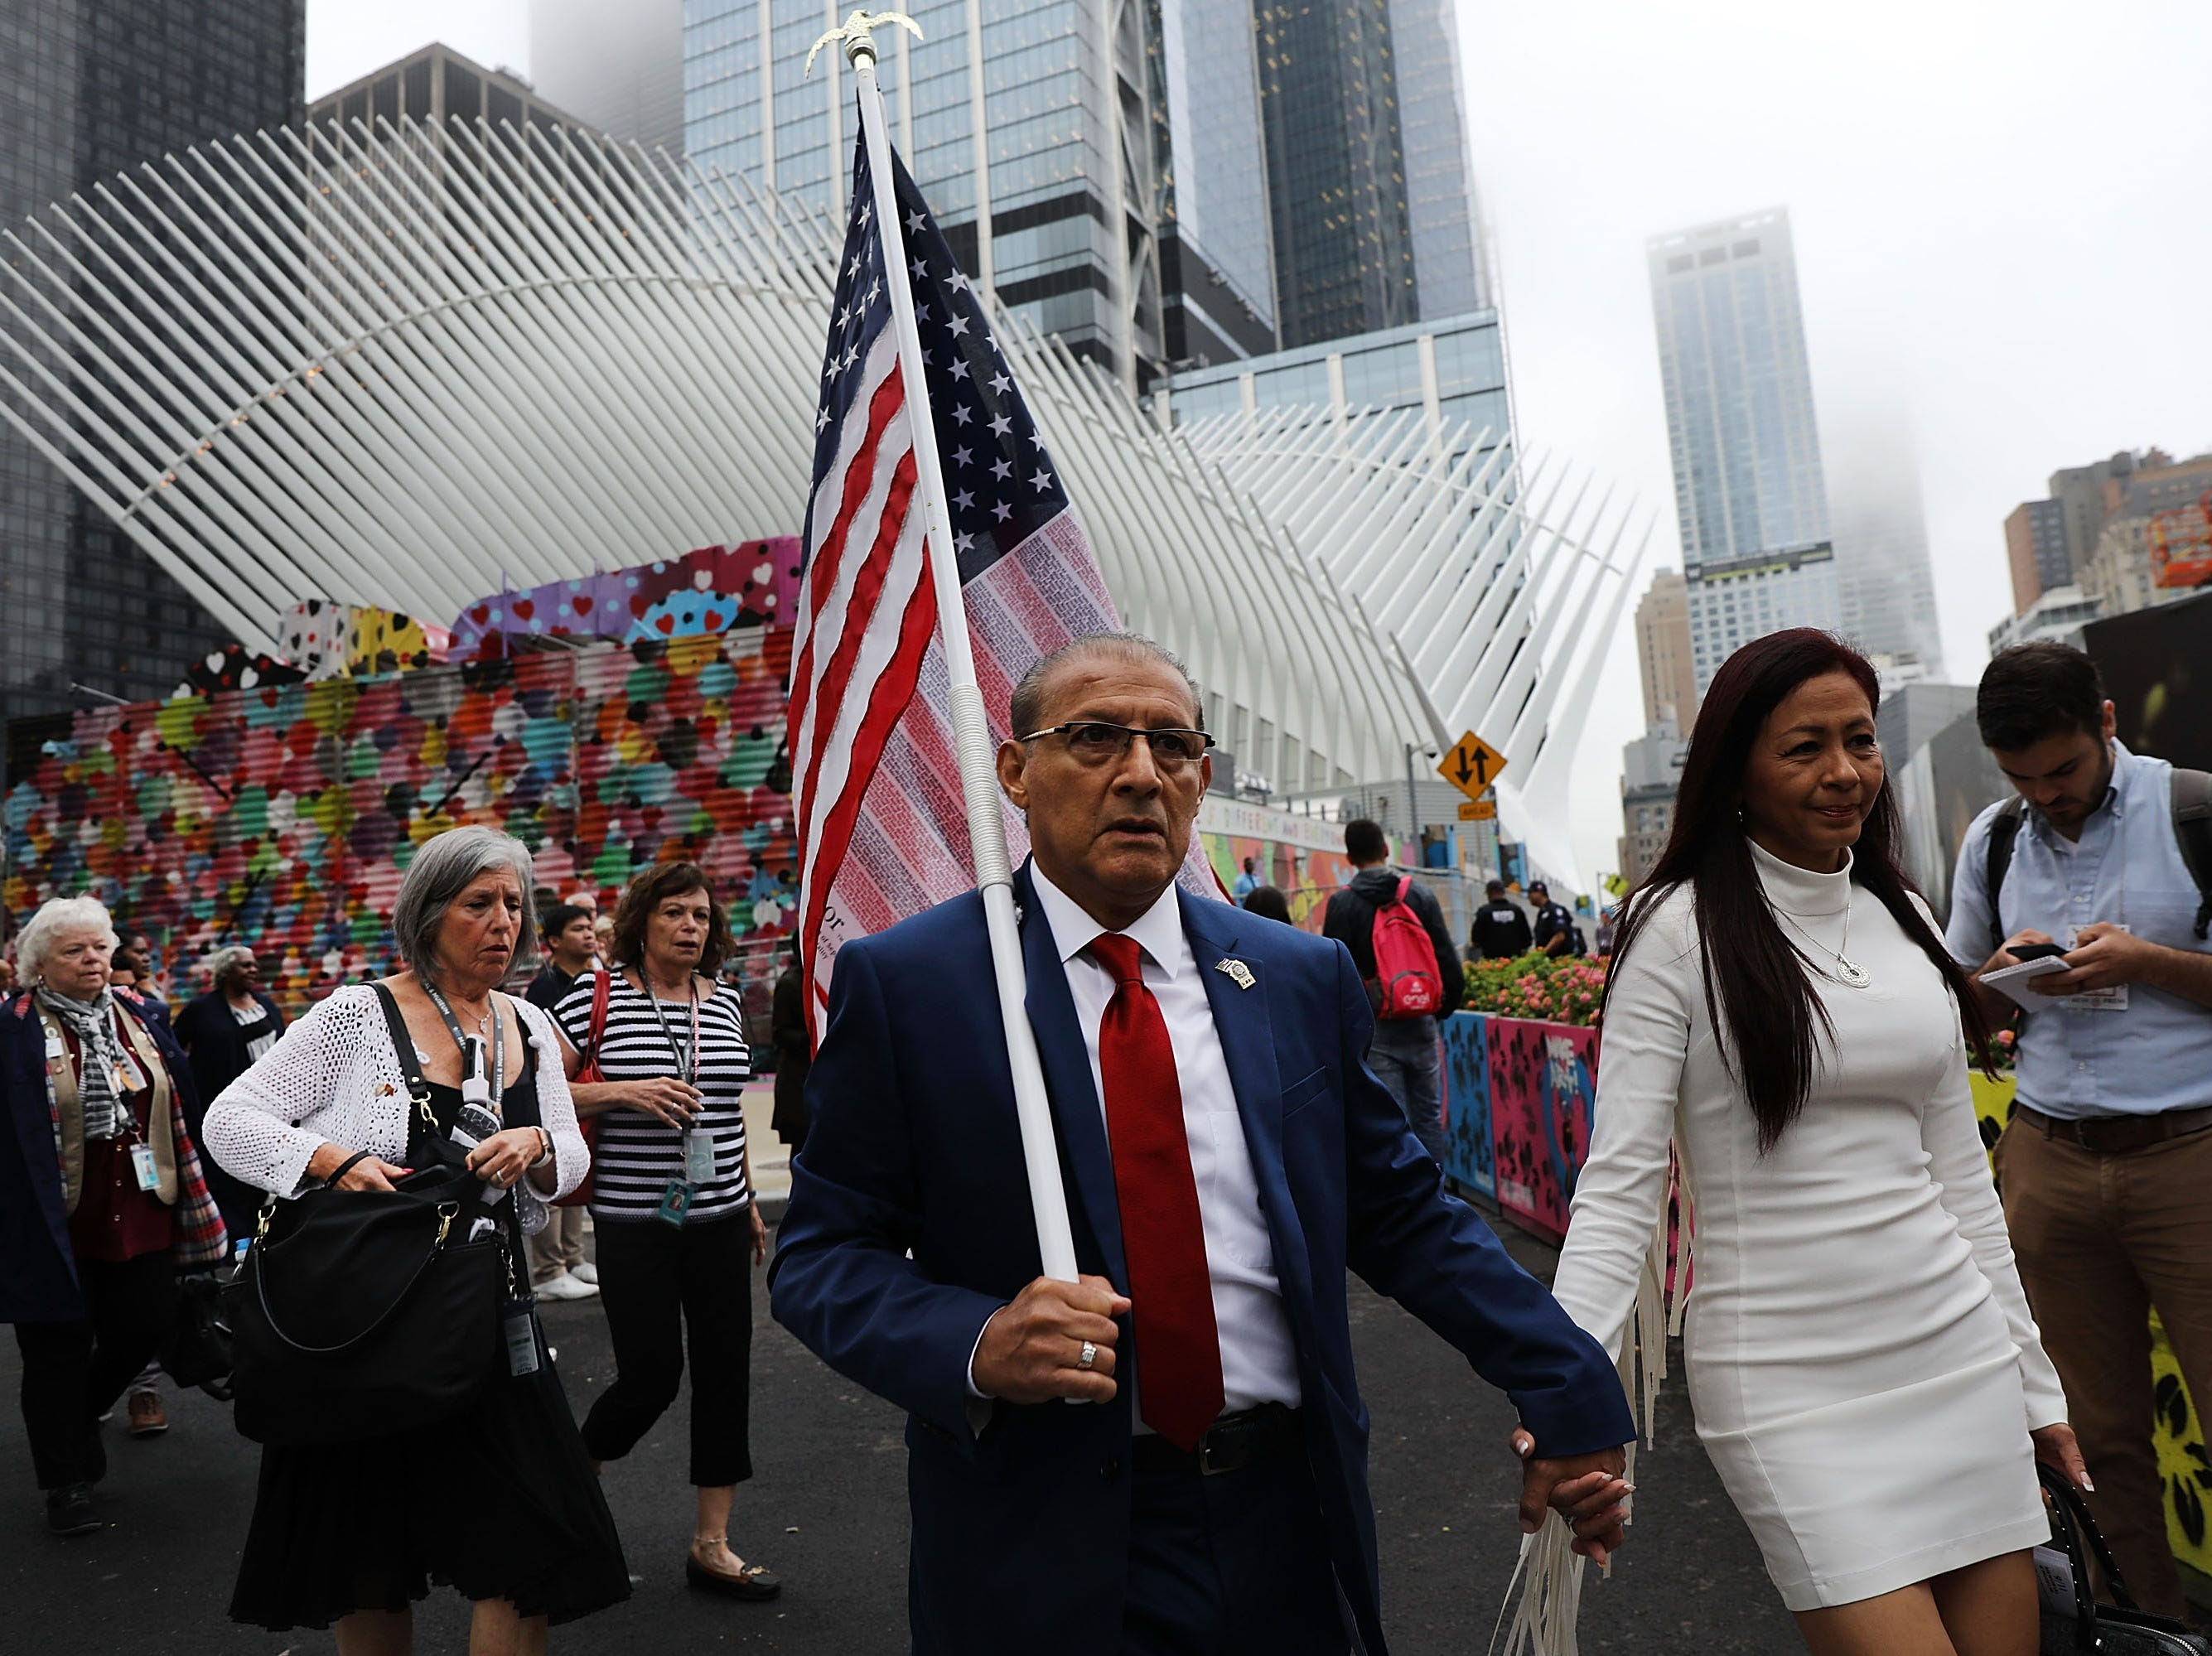 Relatives and friends of victims walk into the World Trade Center site for a morning commemoration ceremony for the victims on Sept.11, 2018 in New York.